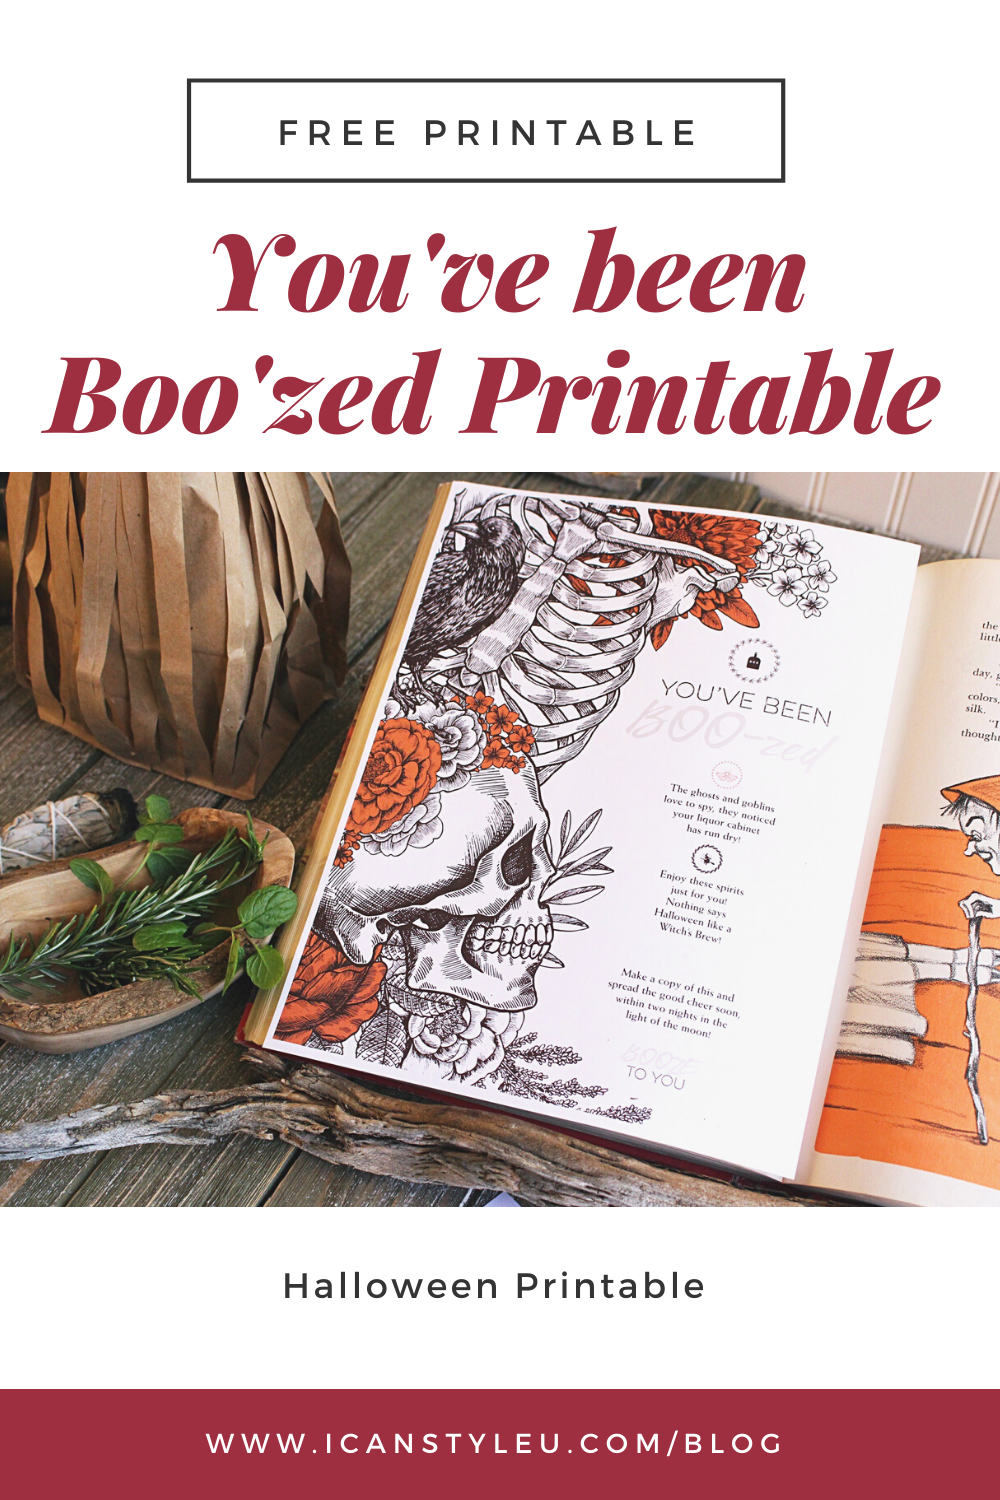 You've been Boo'zed Printable